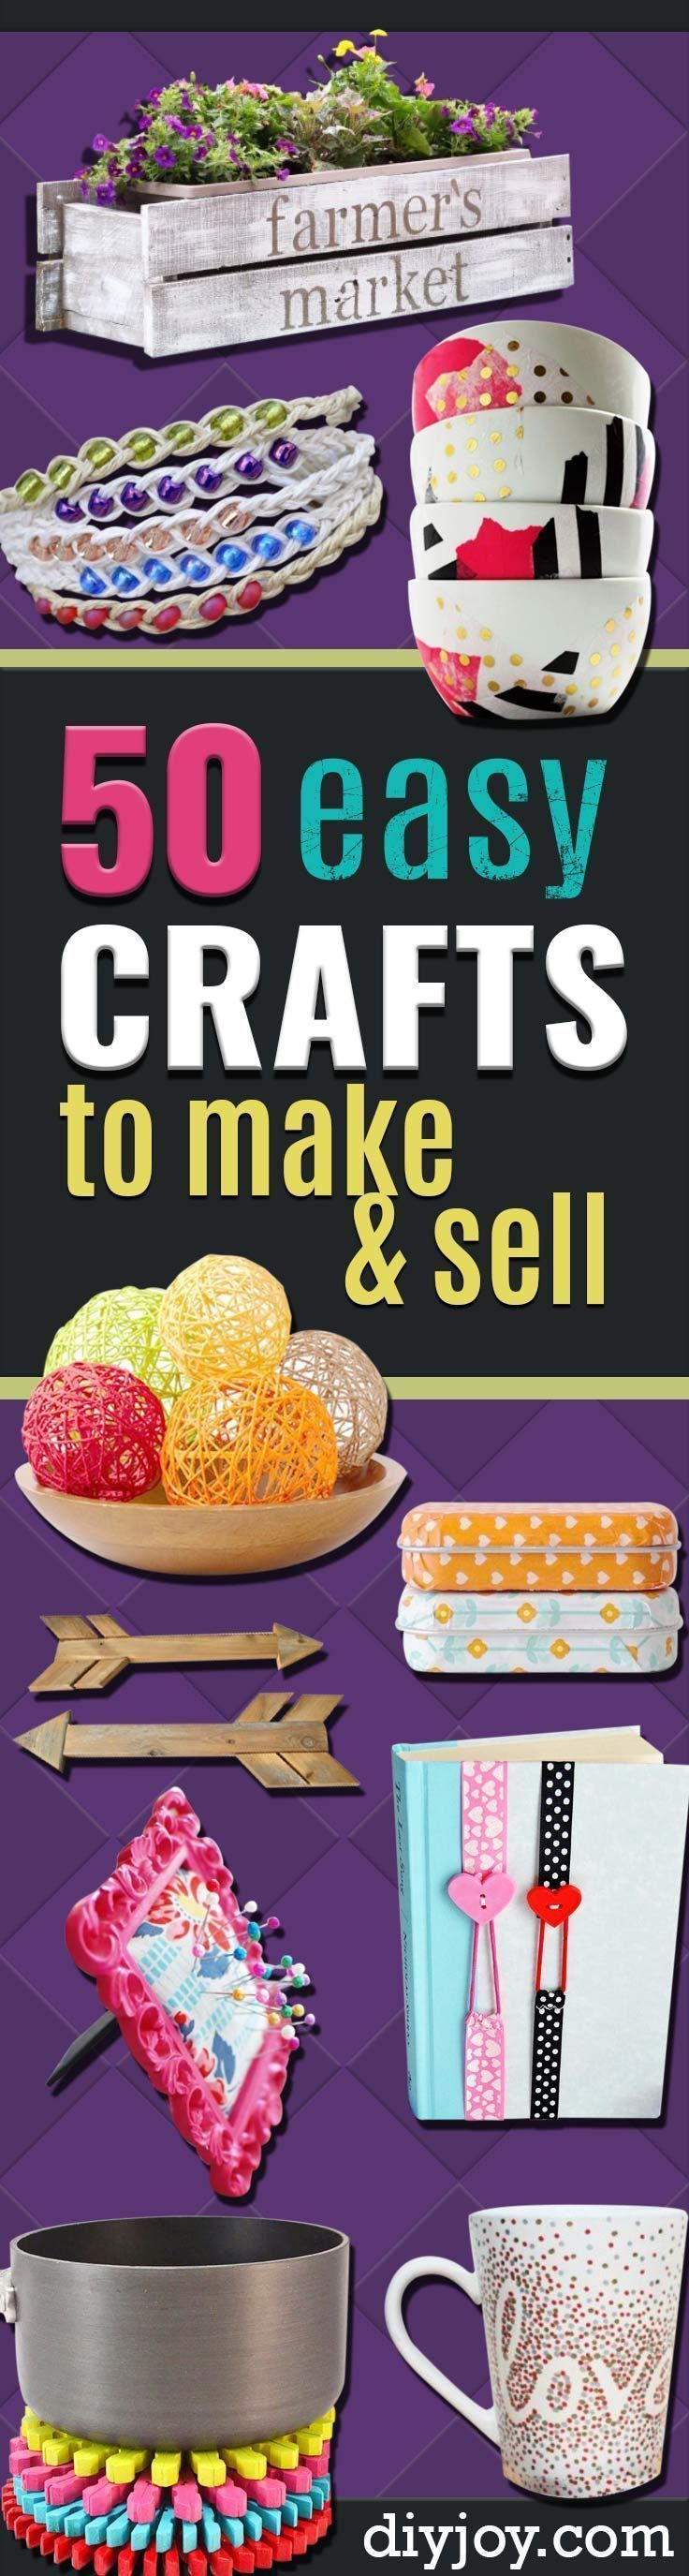 best 25 craft fair crafts ideas on pinterest diy online